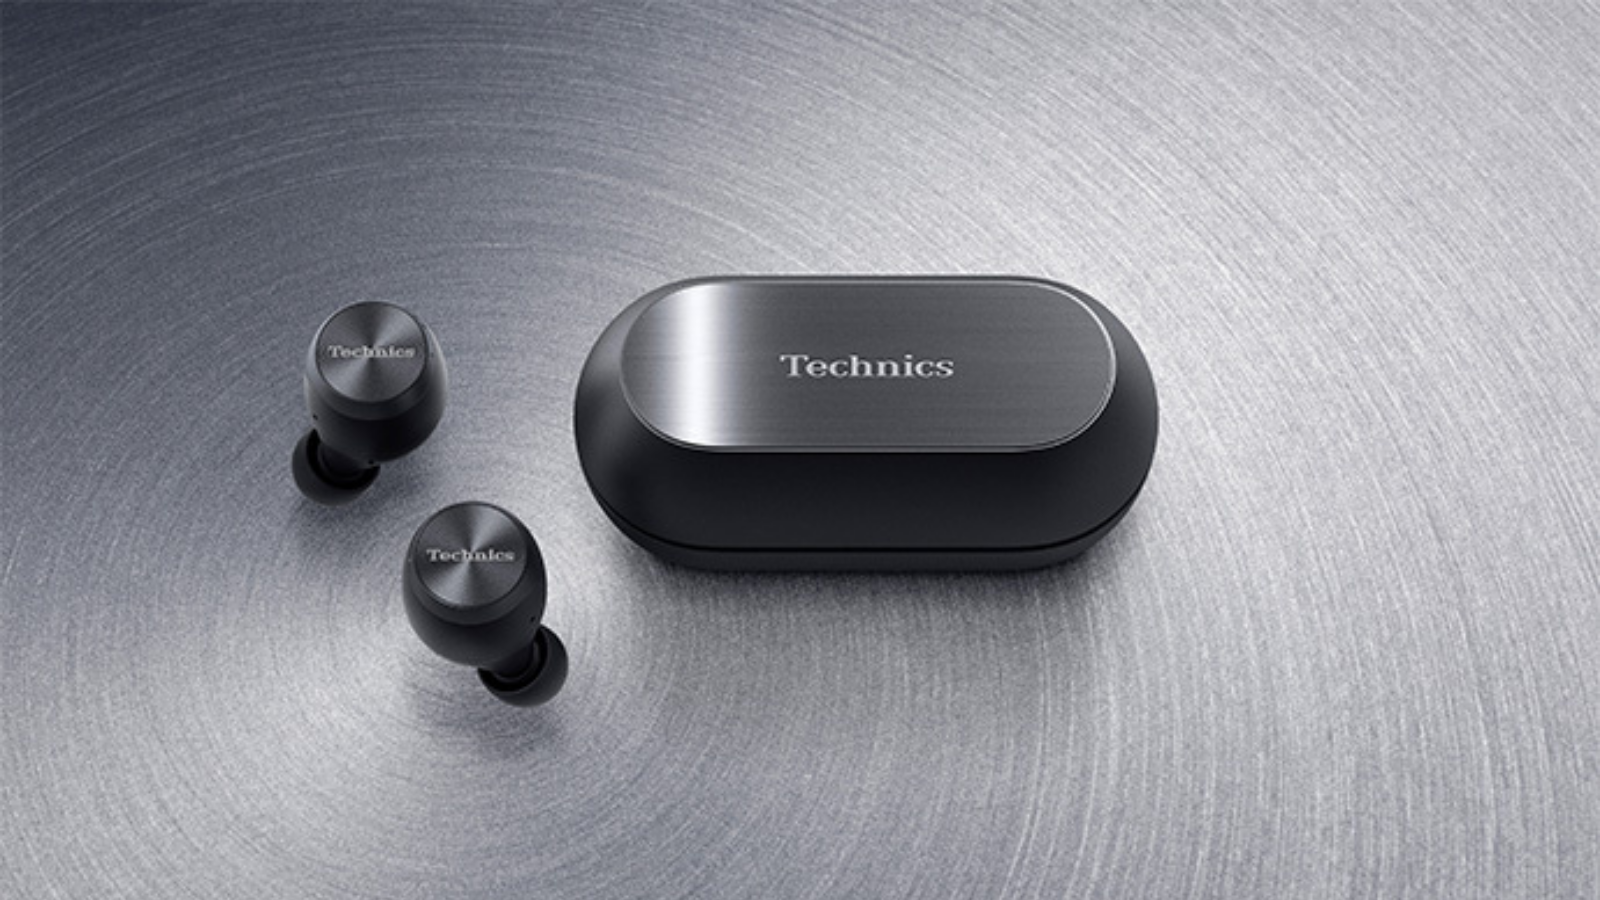 product photo of Panasonic Technics True Wireless Headphones